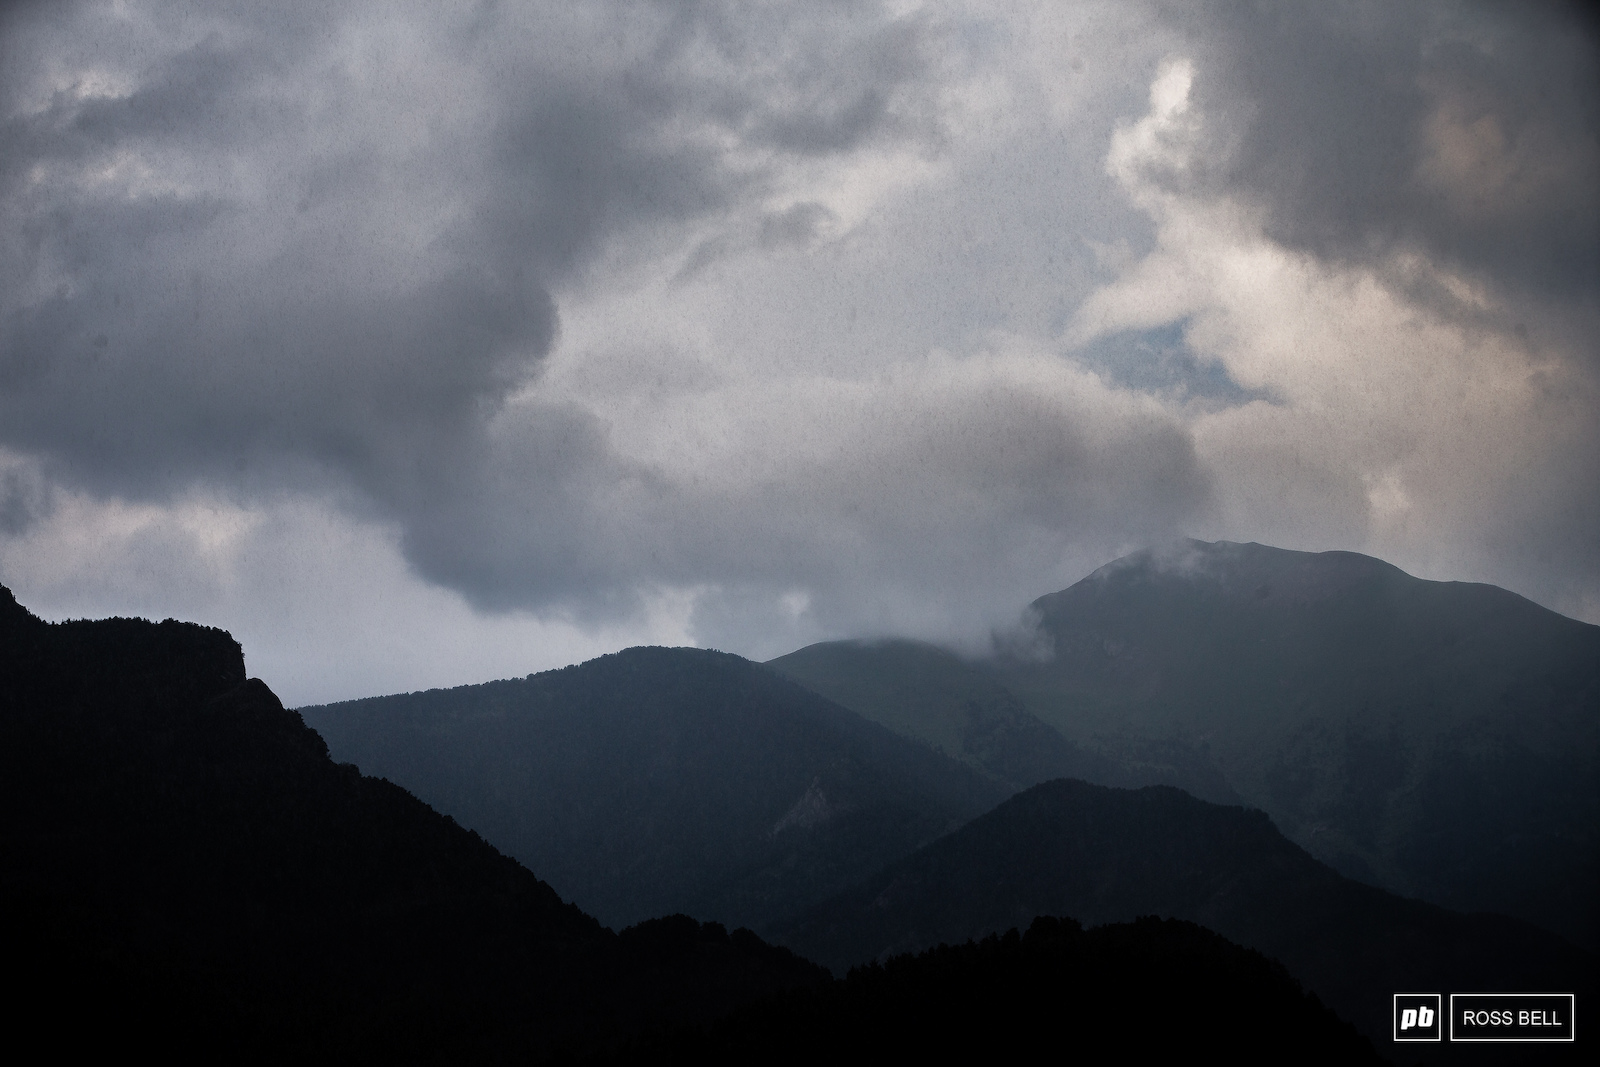 Rain storms have been rolling in over the mountains late in the afternoon since arriving.